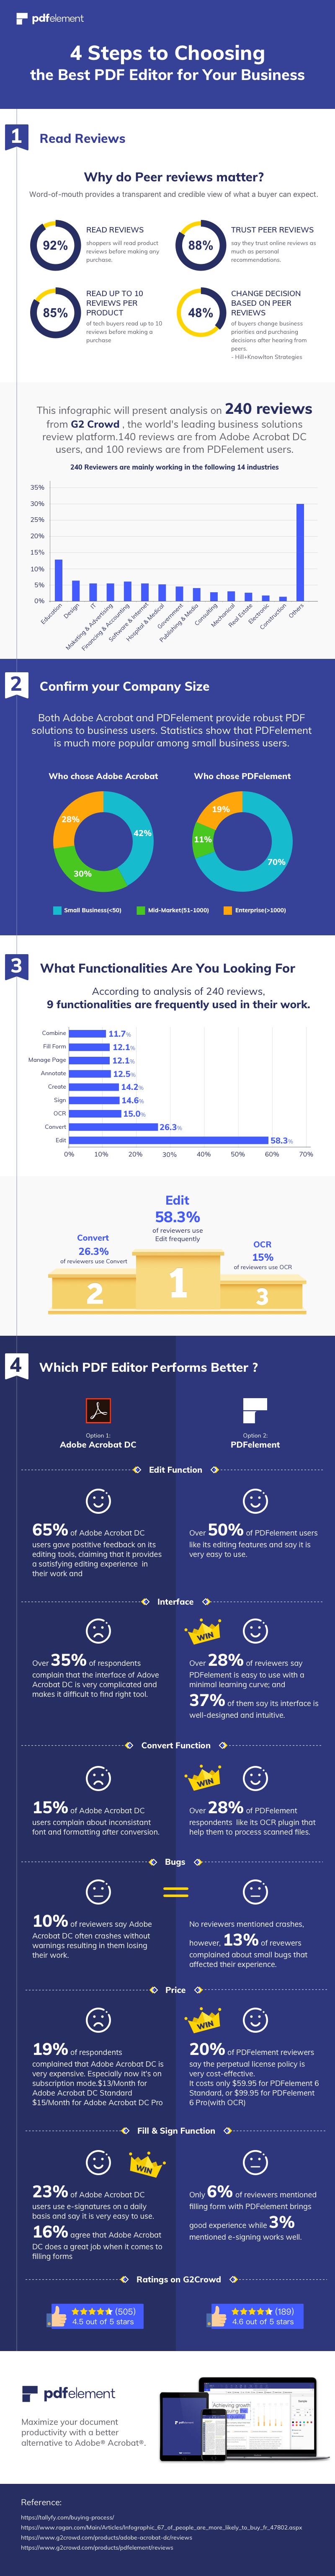 choose best pdf editor for your business